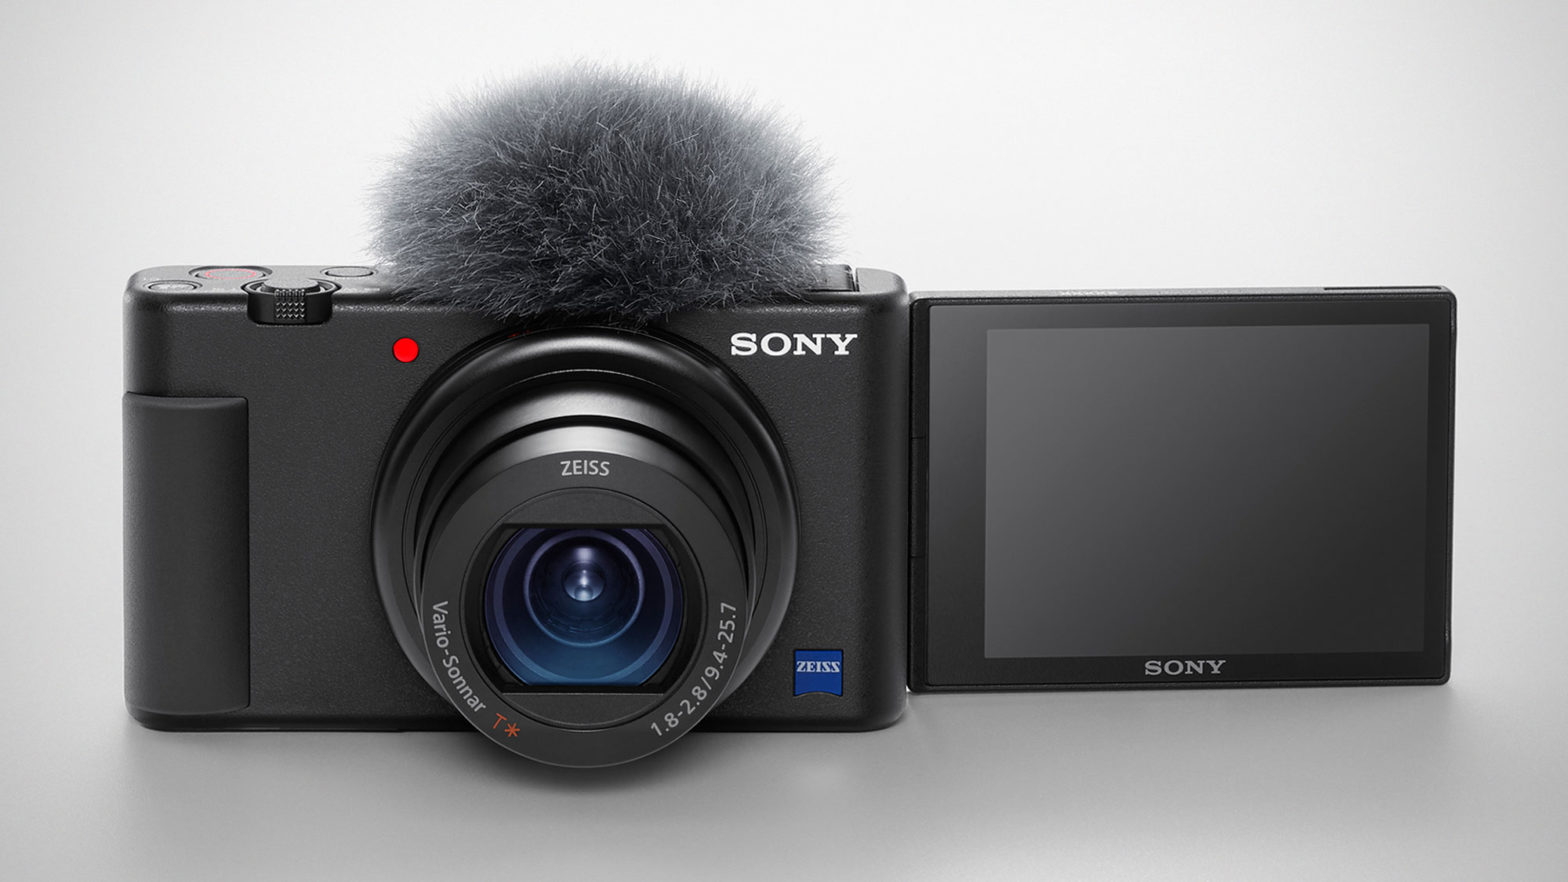 Sony ZV-1 Pocket-sized Digital Camera